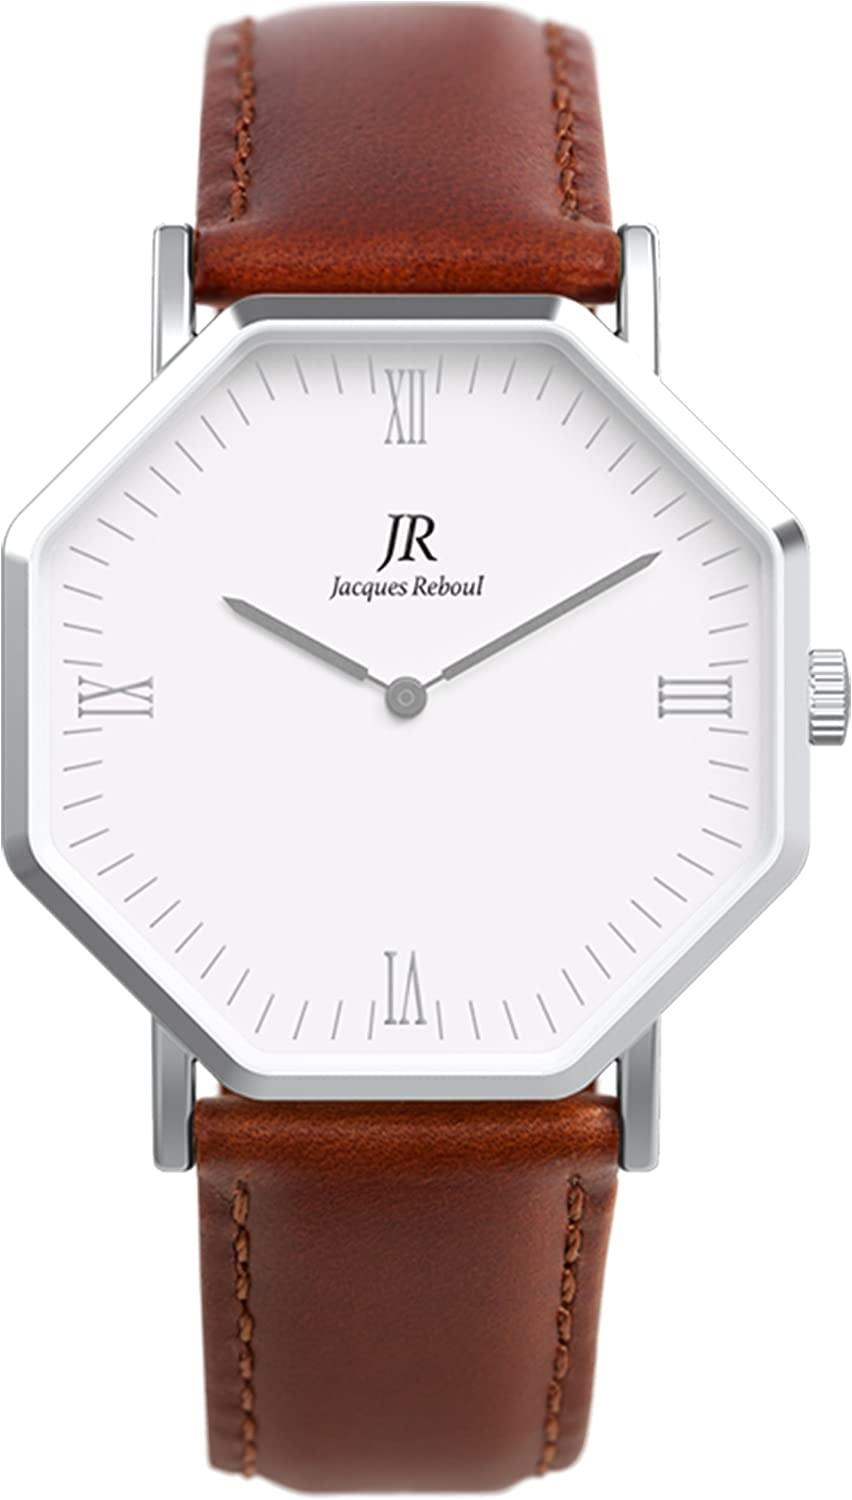 Jacques Reboul Premier Roman Silver Watch | St. Martin Women's 36mm Brown Leather Strap